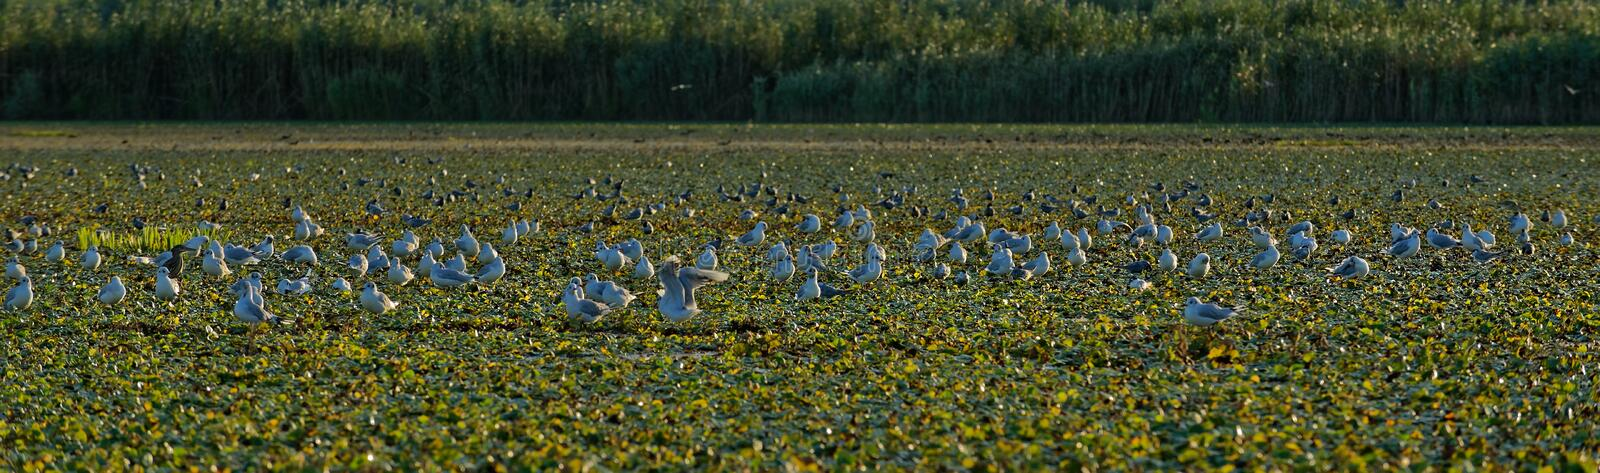 Little gulls on field of water chestnuts in Danube delta royalty free stock images